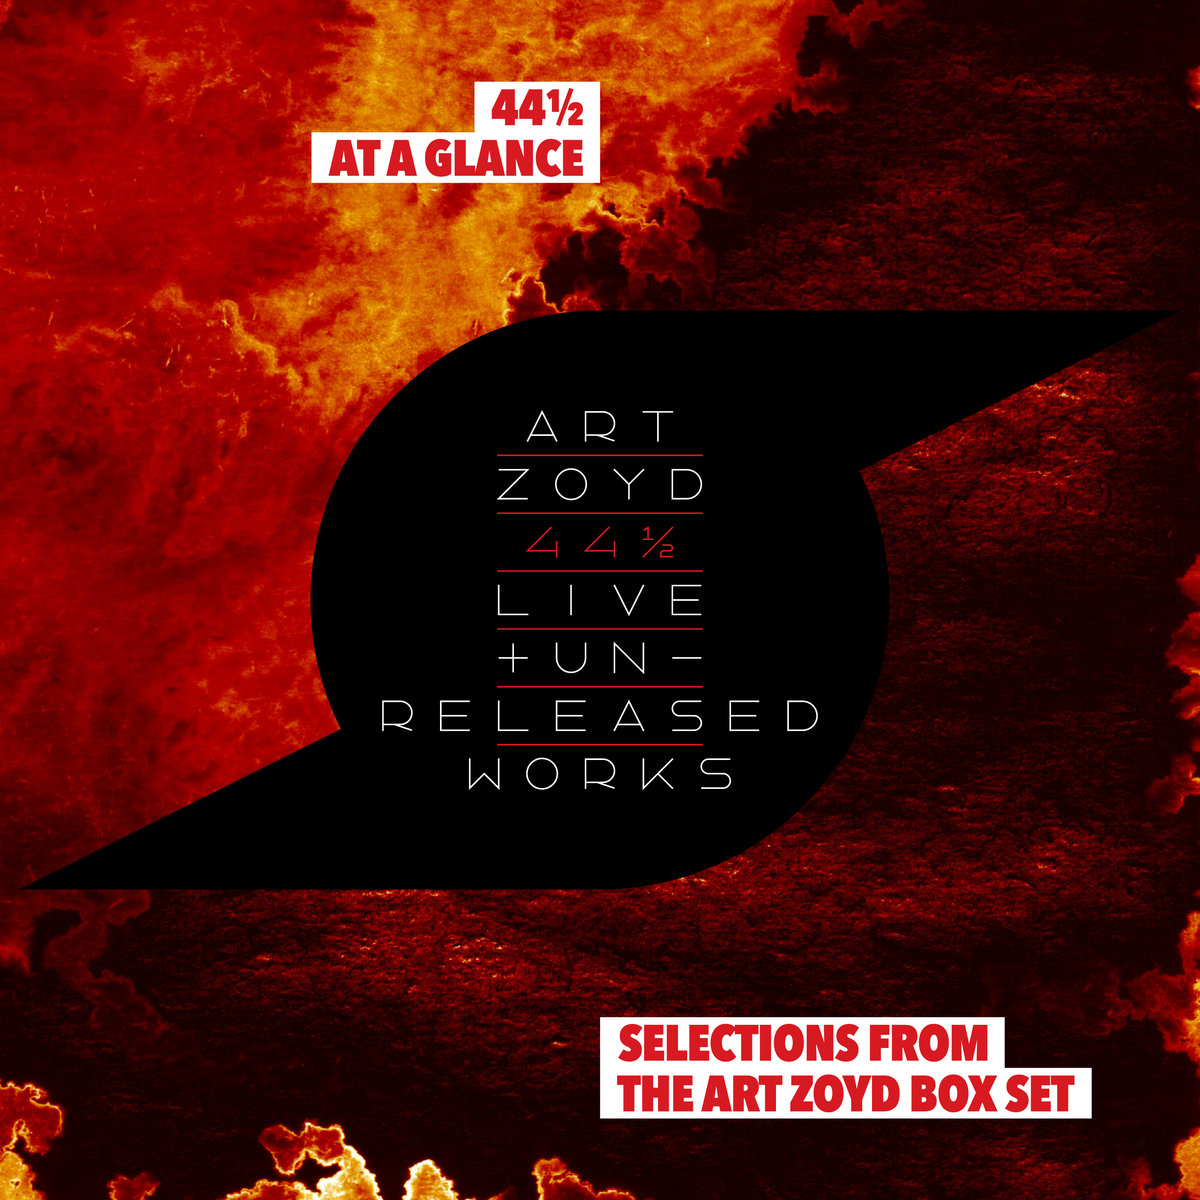 Art Zoyd - 44 1/2 at a Glance: Selections from the Art Zoyd Box Set